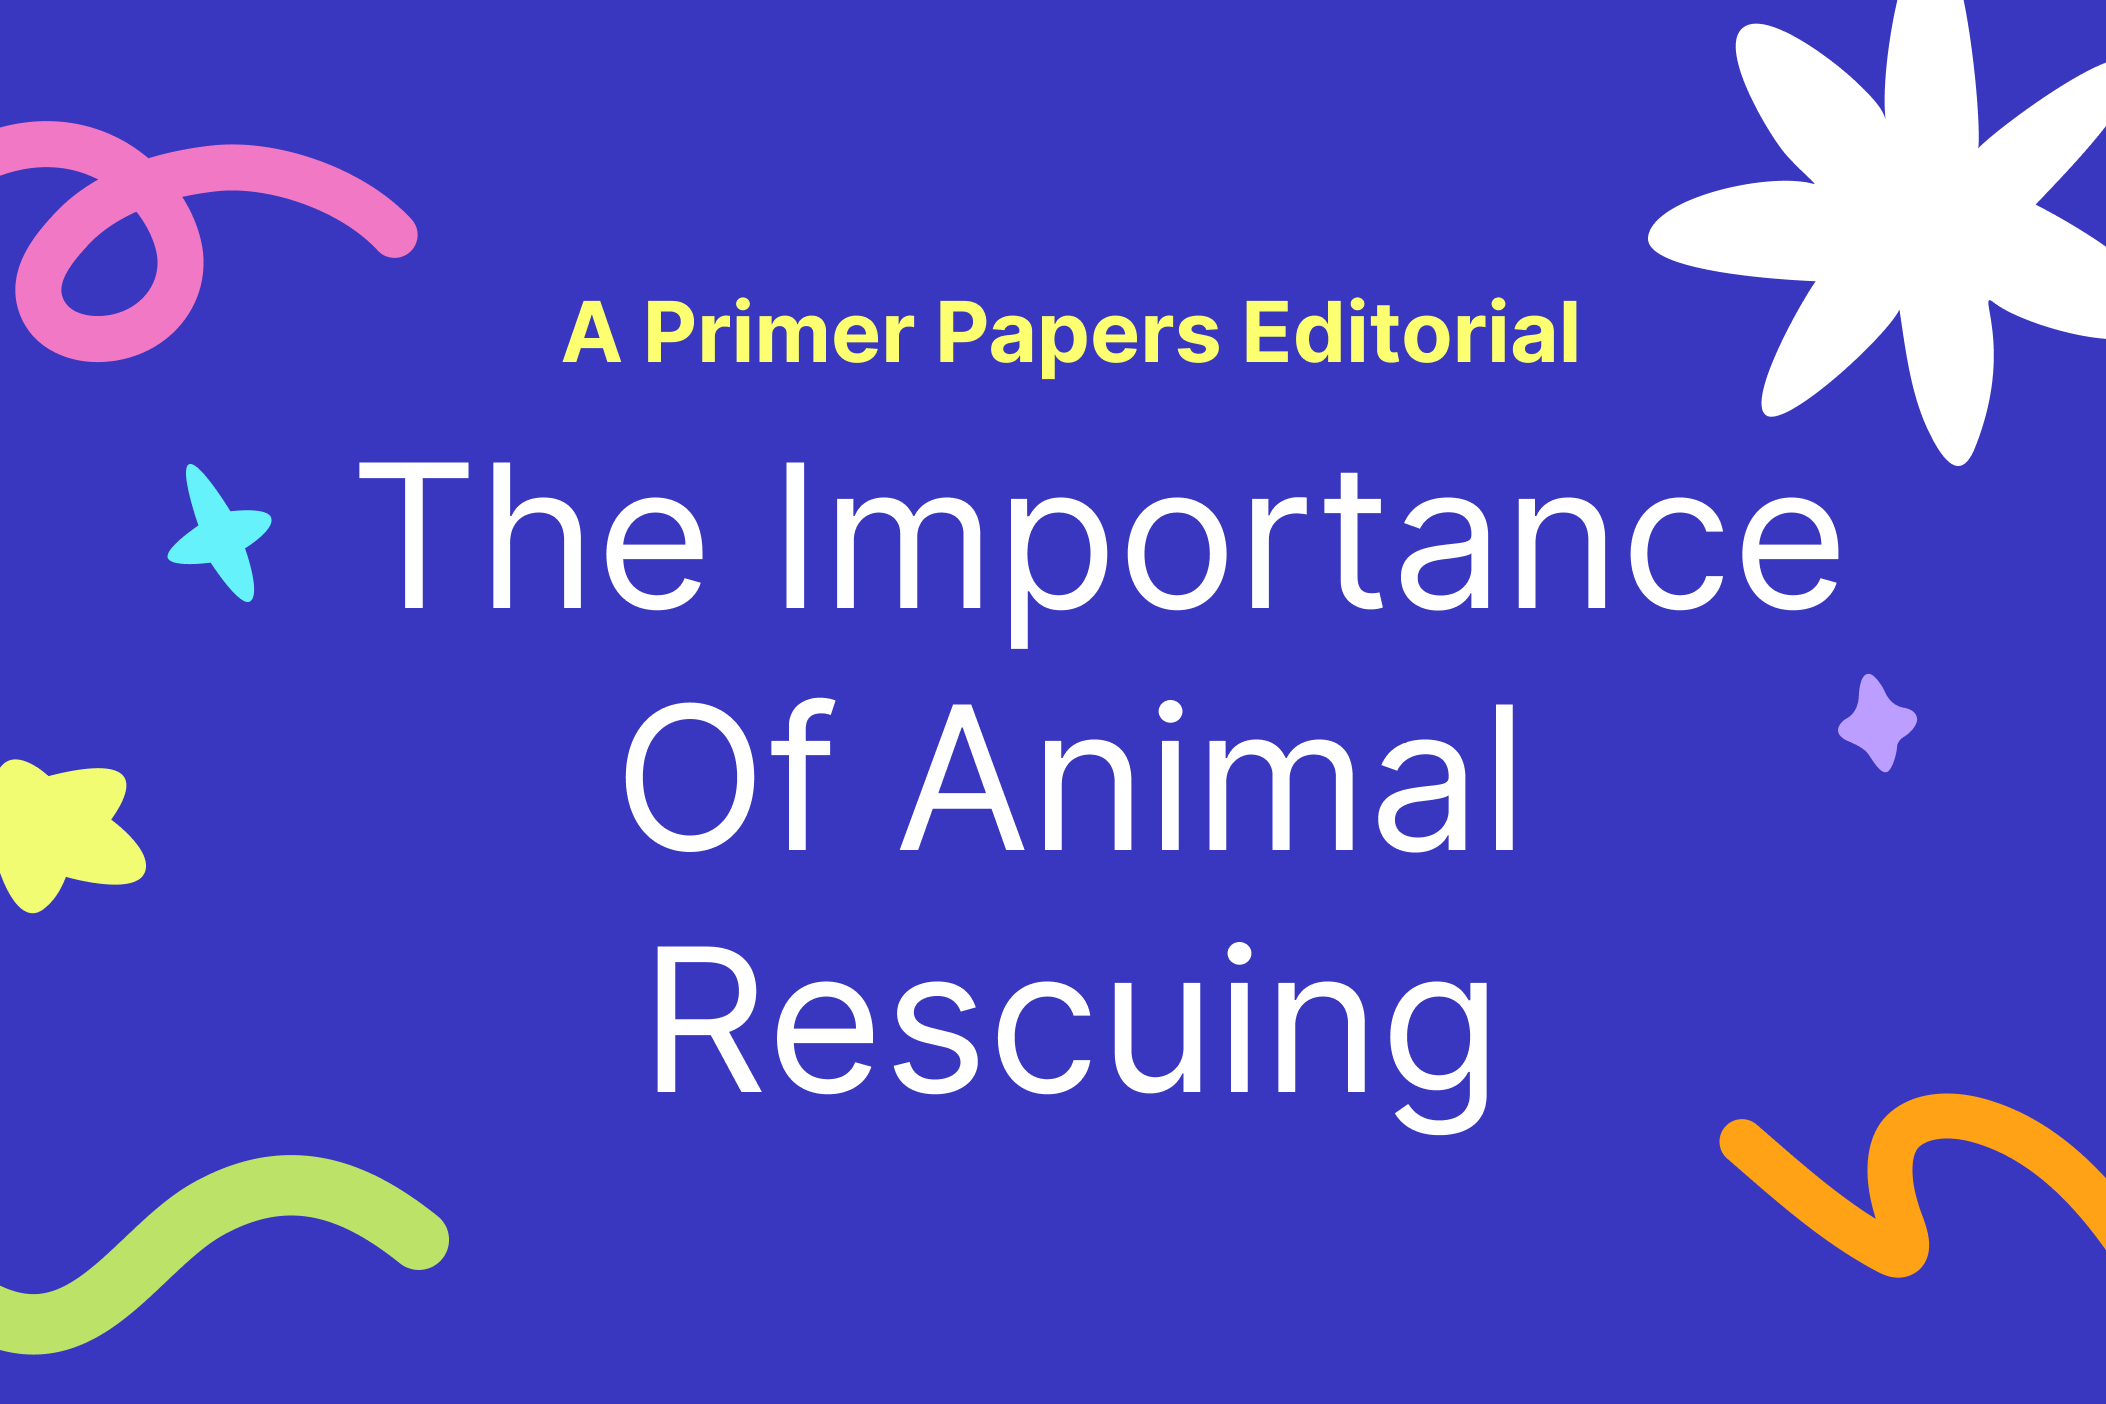 The Importance of Animal Rescuing by Eva